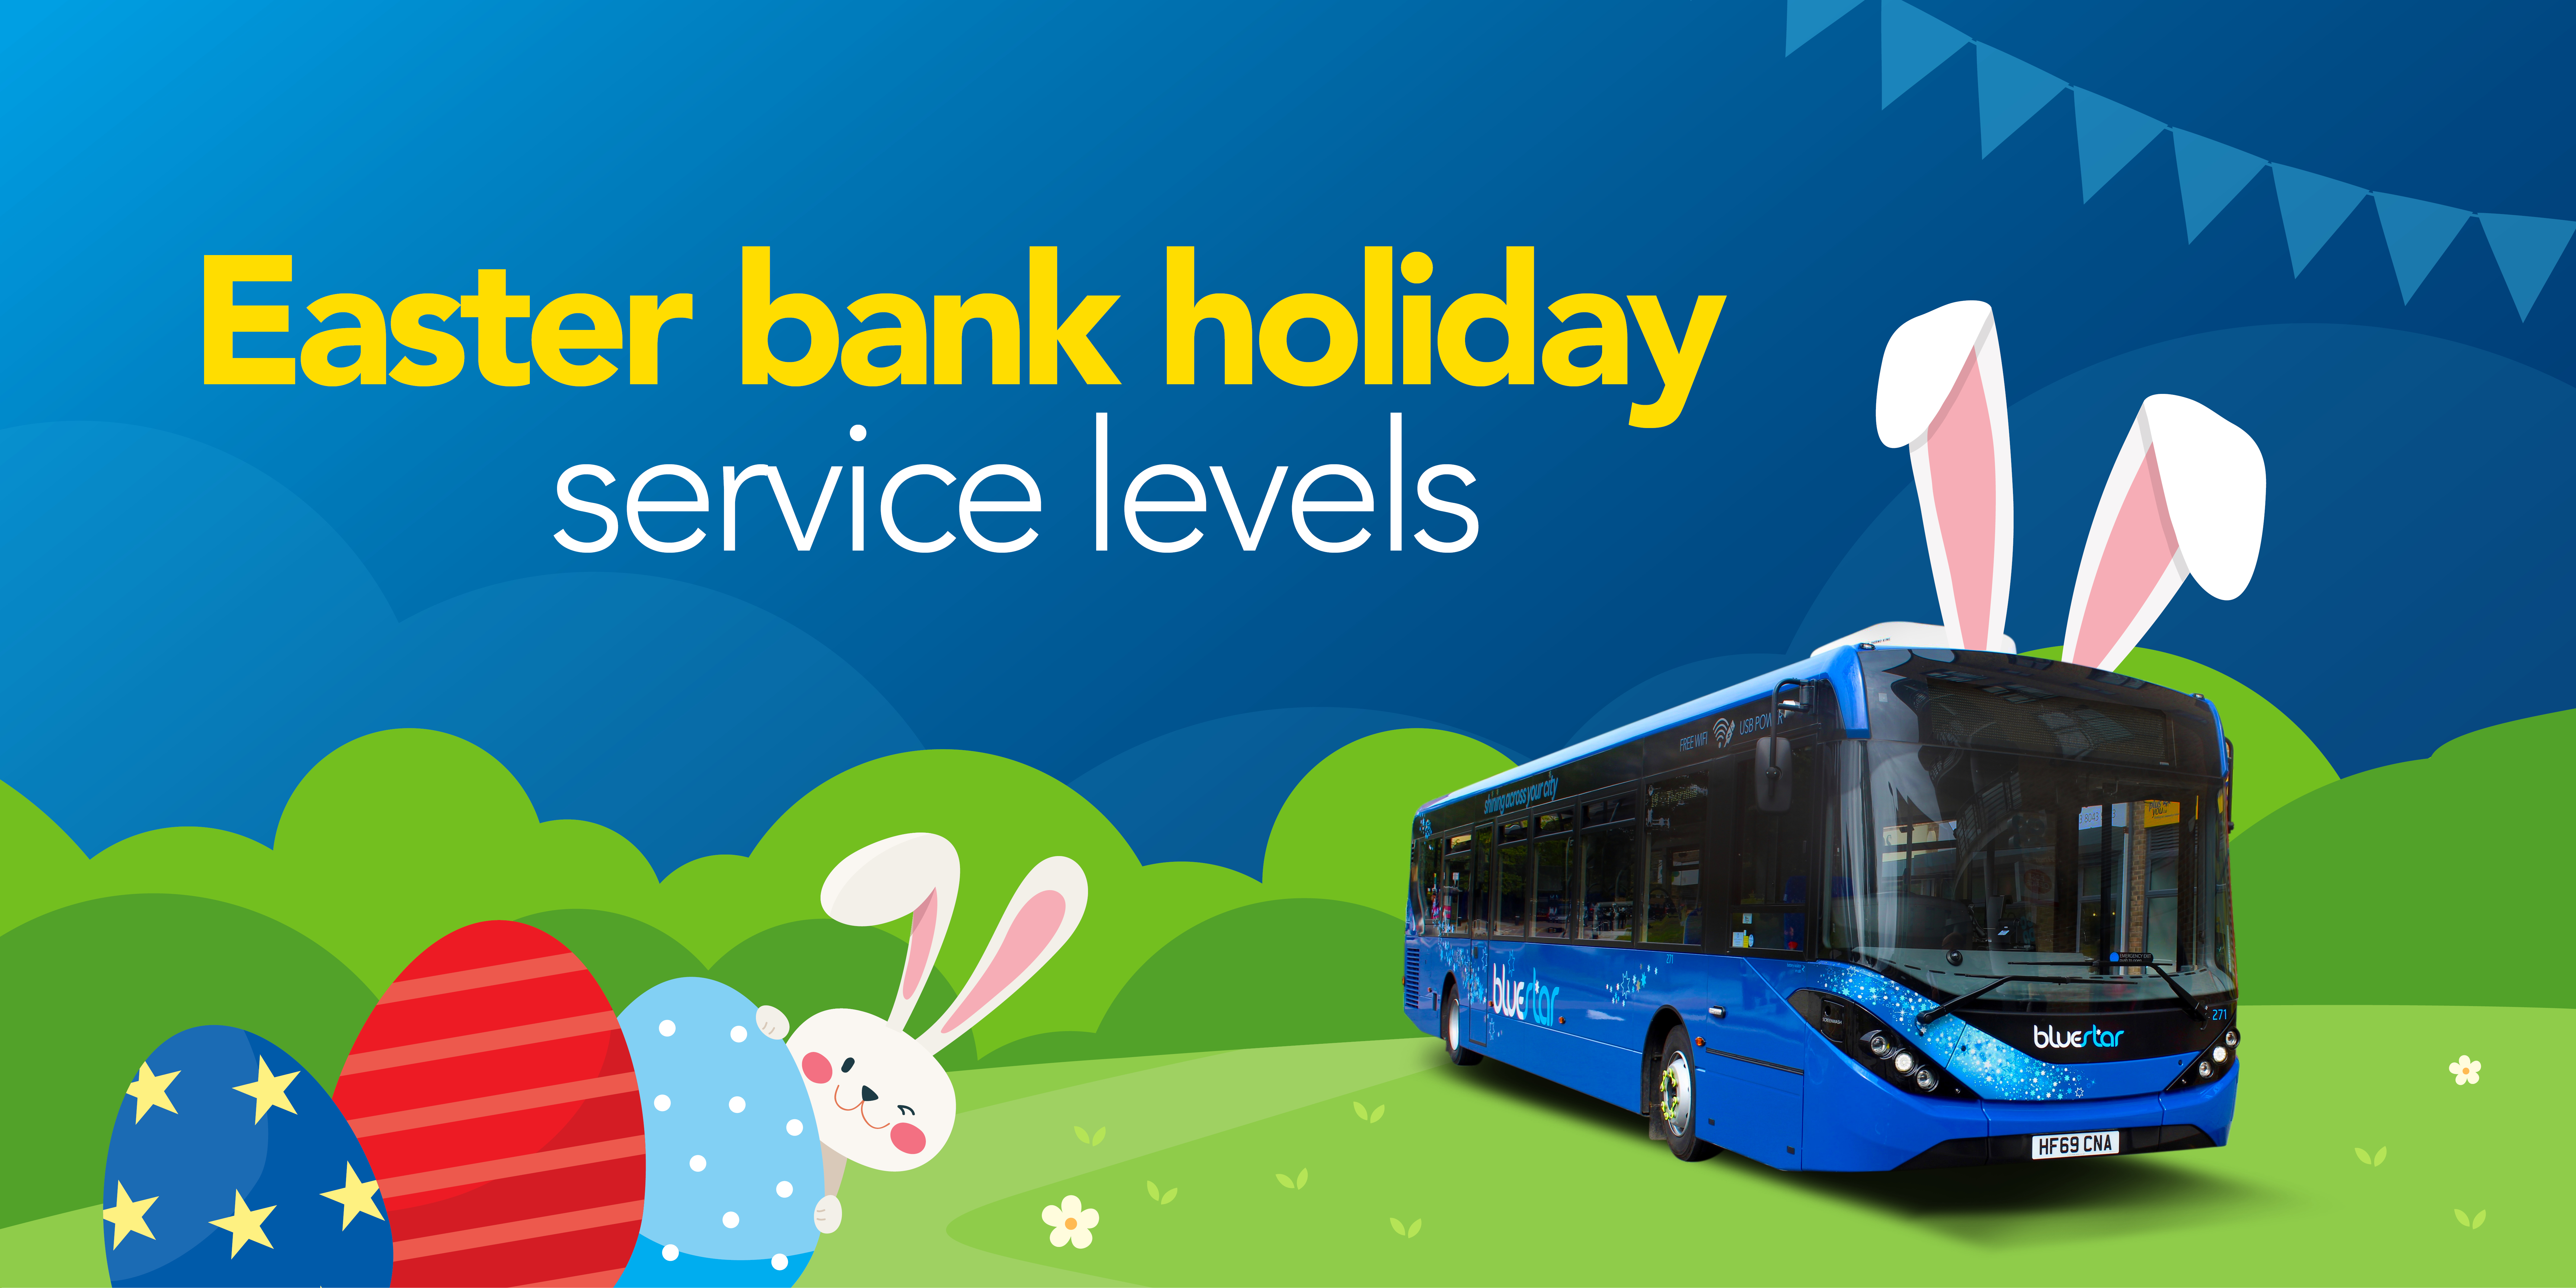 Image of a bluestar bus with text reading 'Easter bank holiday service levels'